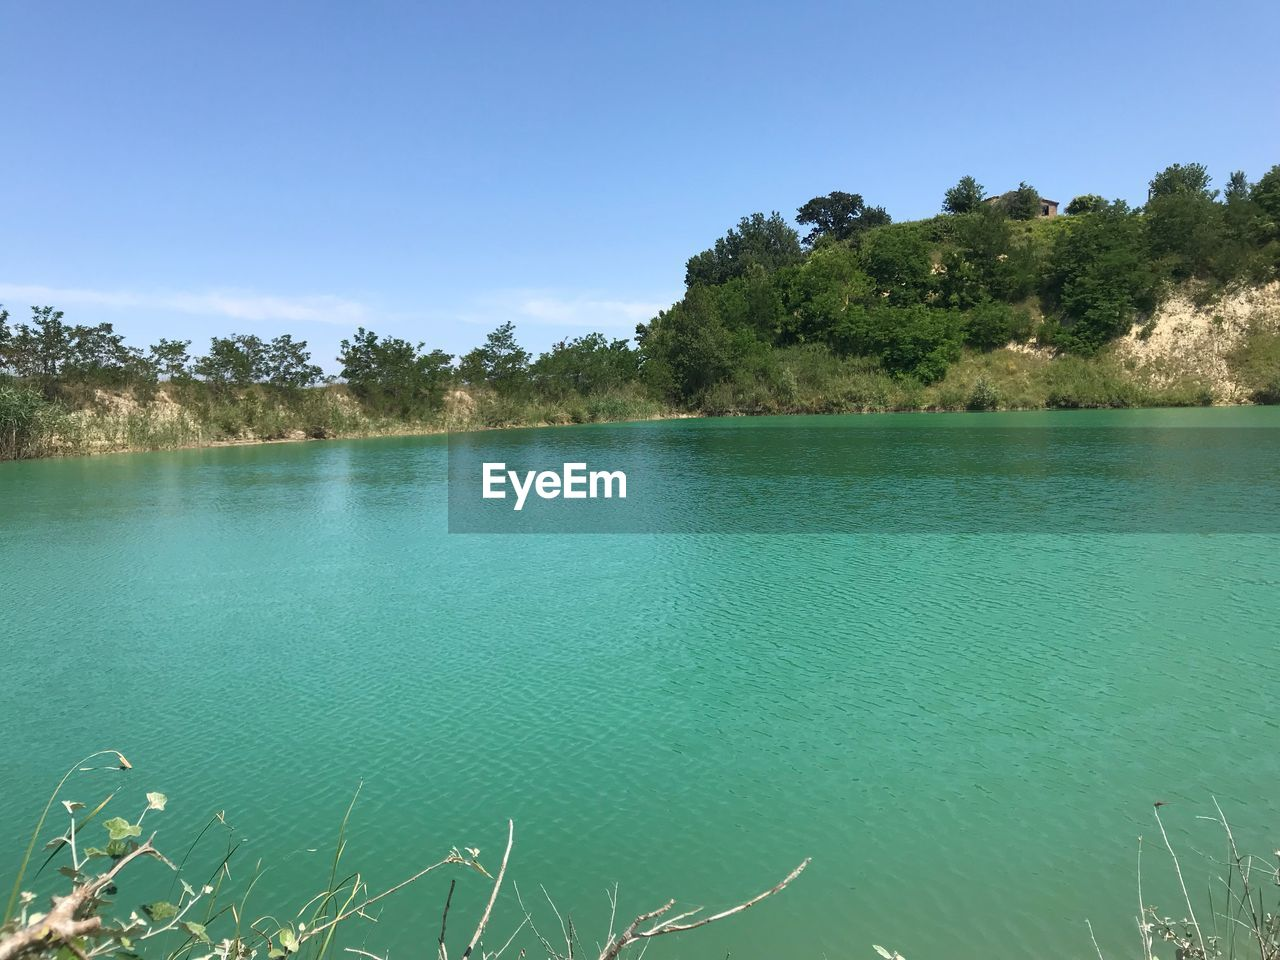 water, tree, plant, beauty in nature, tranquility, scenics - nature, tranquil scene, sky, lake, nature, day, no people, non-urban scene, blue, growth, land, idyllic, outdoors, clear sky, turquoise colored